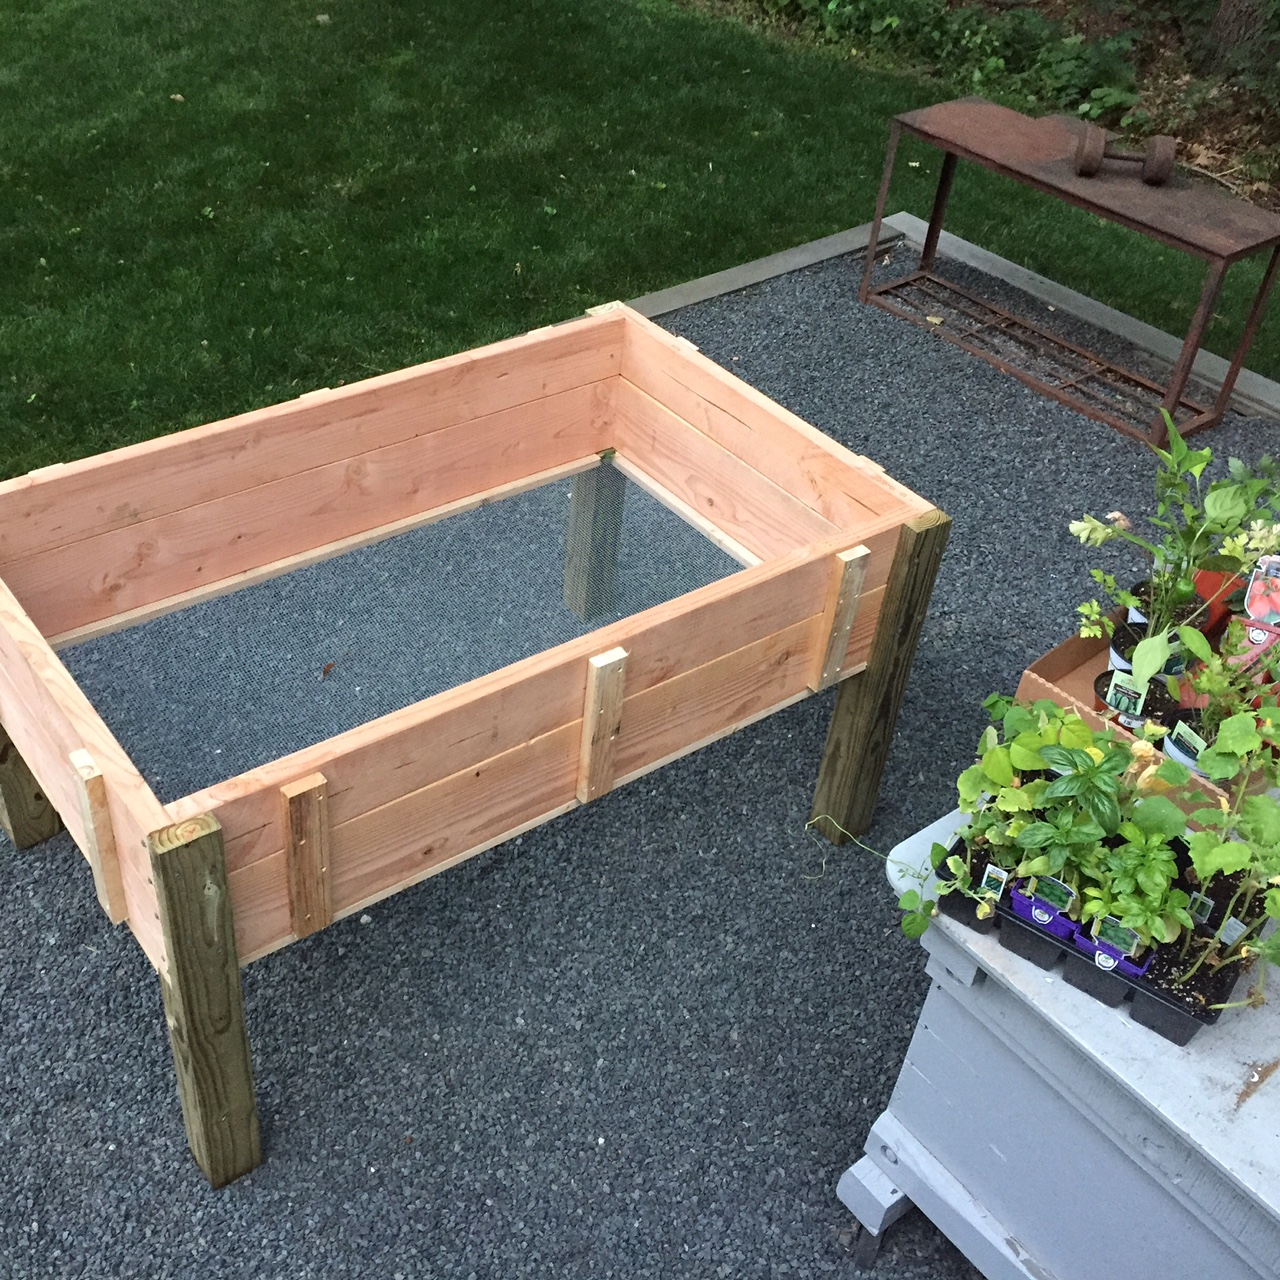 Stand Up Planter Box – Design Plans